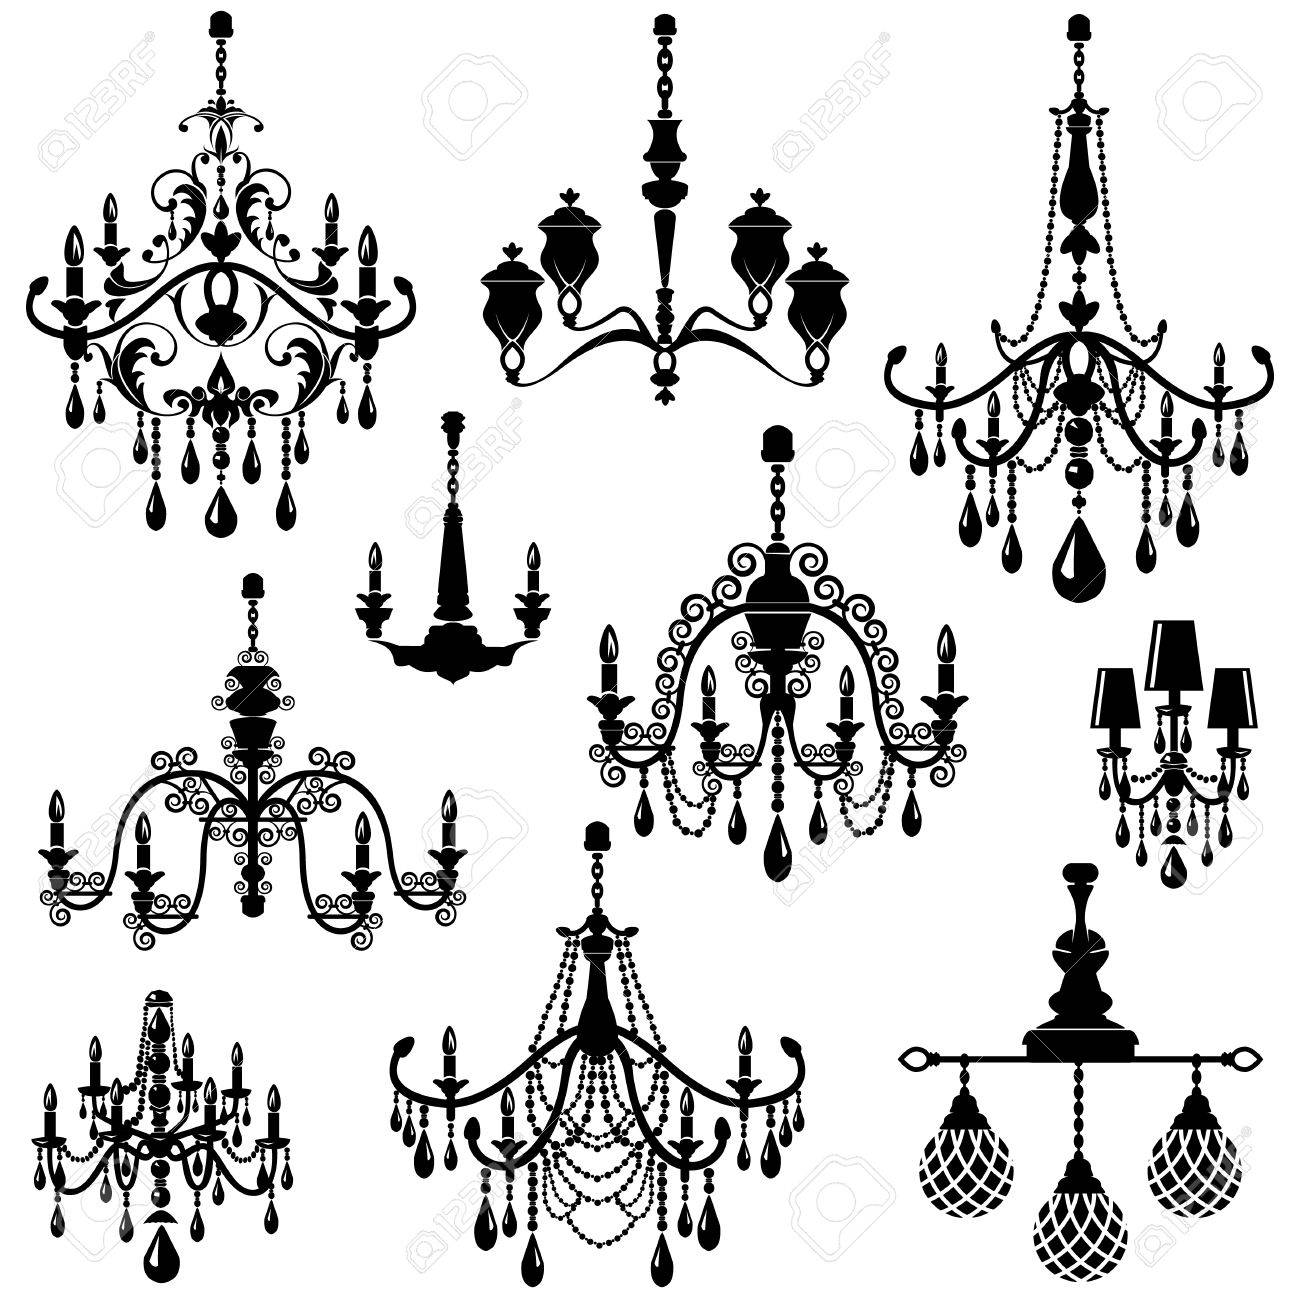 fixture classic decor images european art old antique lights symmetry lamps goth ambiance en style decoration electricity house decorative chandelier home iron mansion illustration glow bulb vampire haunted light room branch lighting dining interior furniture gothic vintage low photo design illumination free illuminated